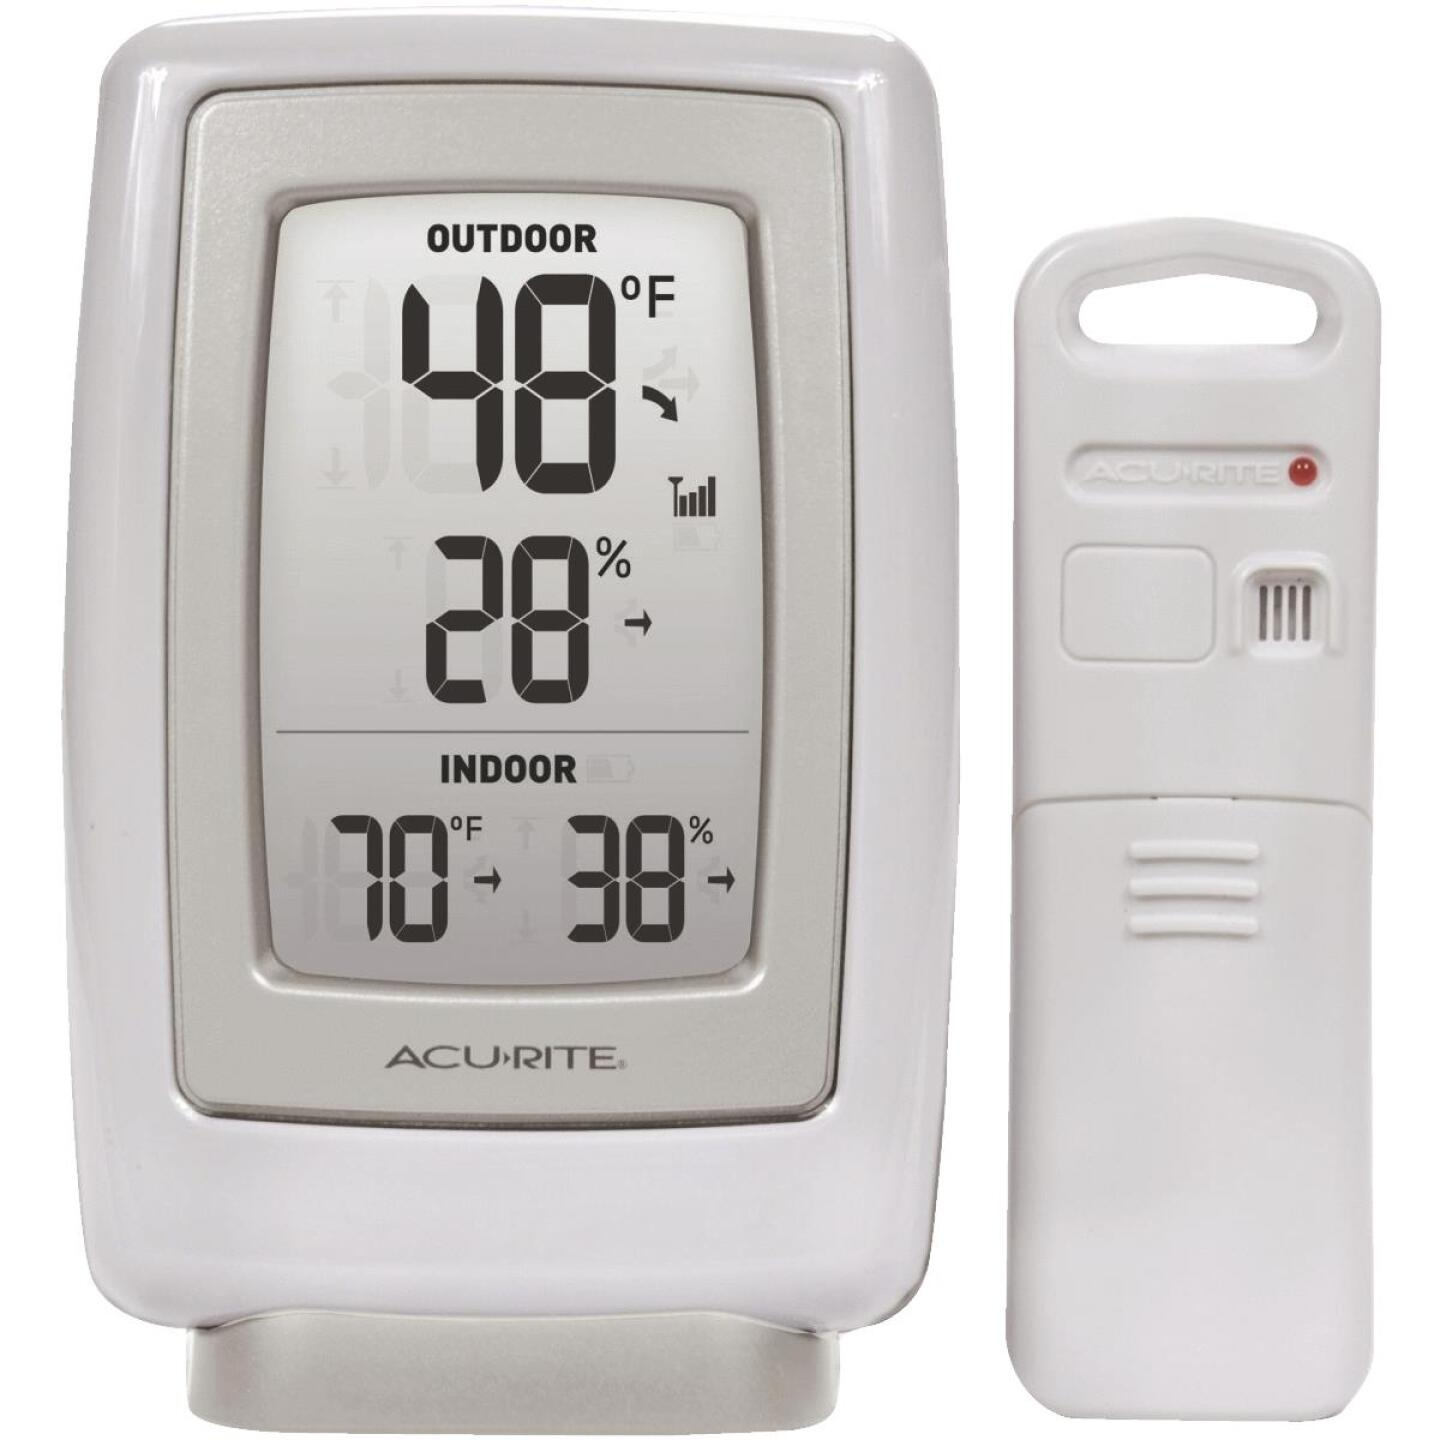 "Acurite 3-1/2"" W x 5-1/2"" H Plastic Wireless Indoor & Outdoor Thermometer Image 1"